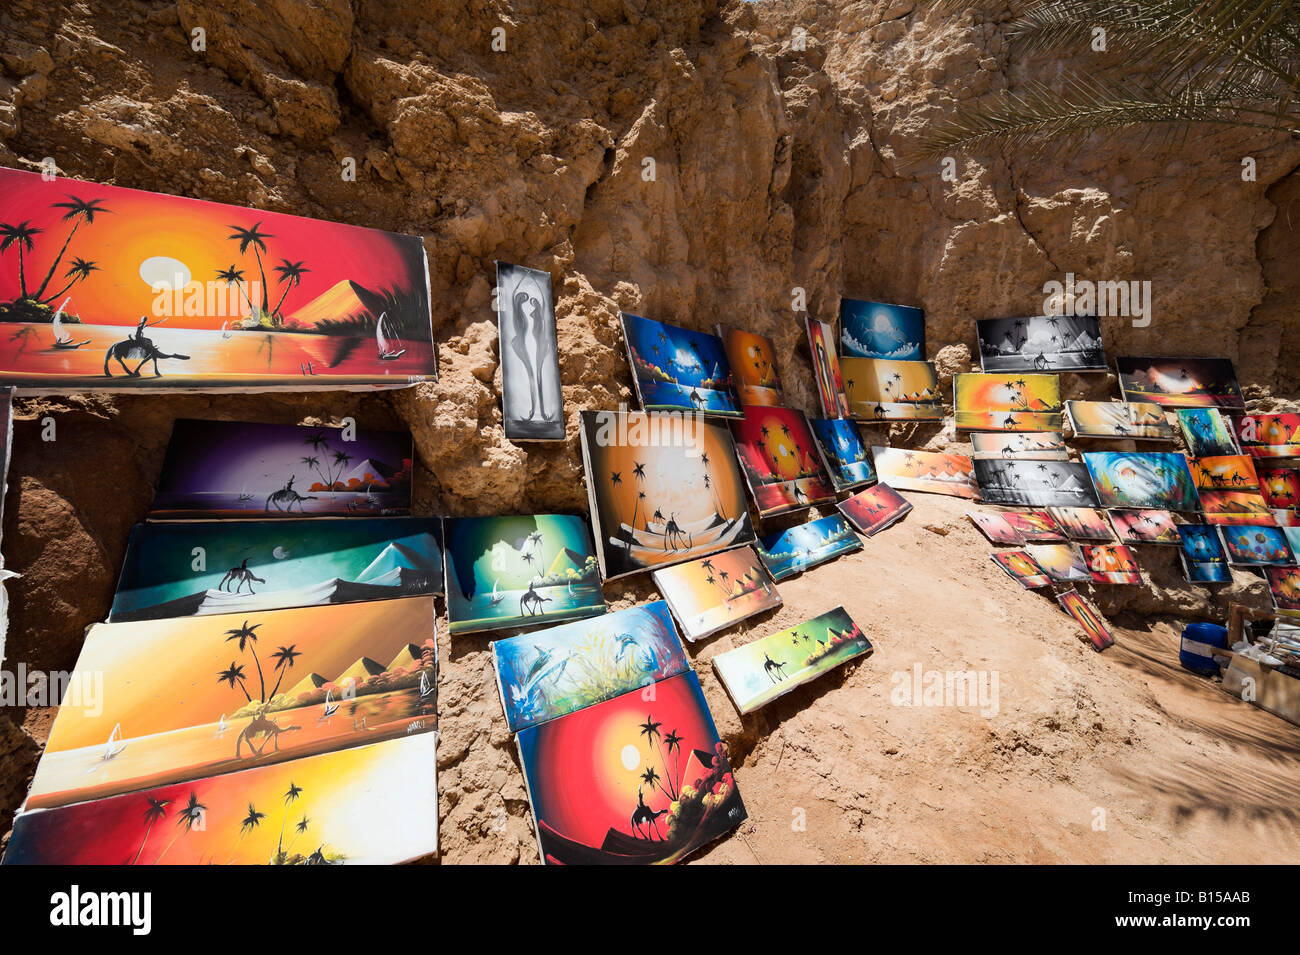 Art for sale on a beach in Sharm el-Sheikh, Red Sea Coast, South Sinai, Egypt - Stock Image